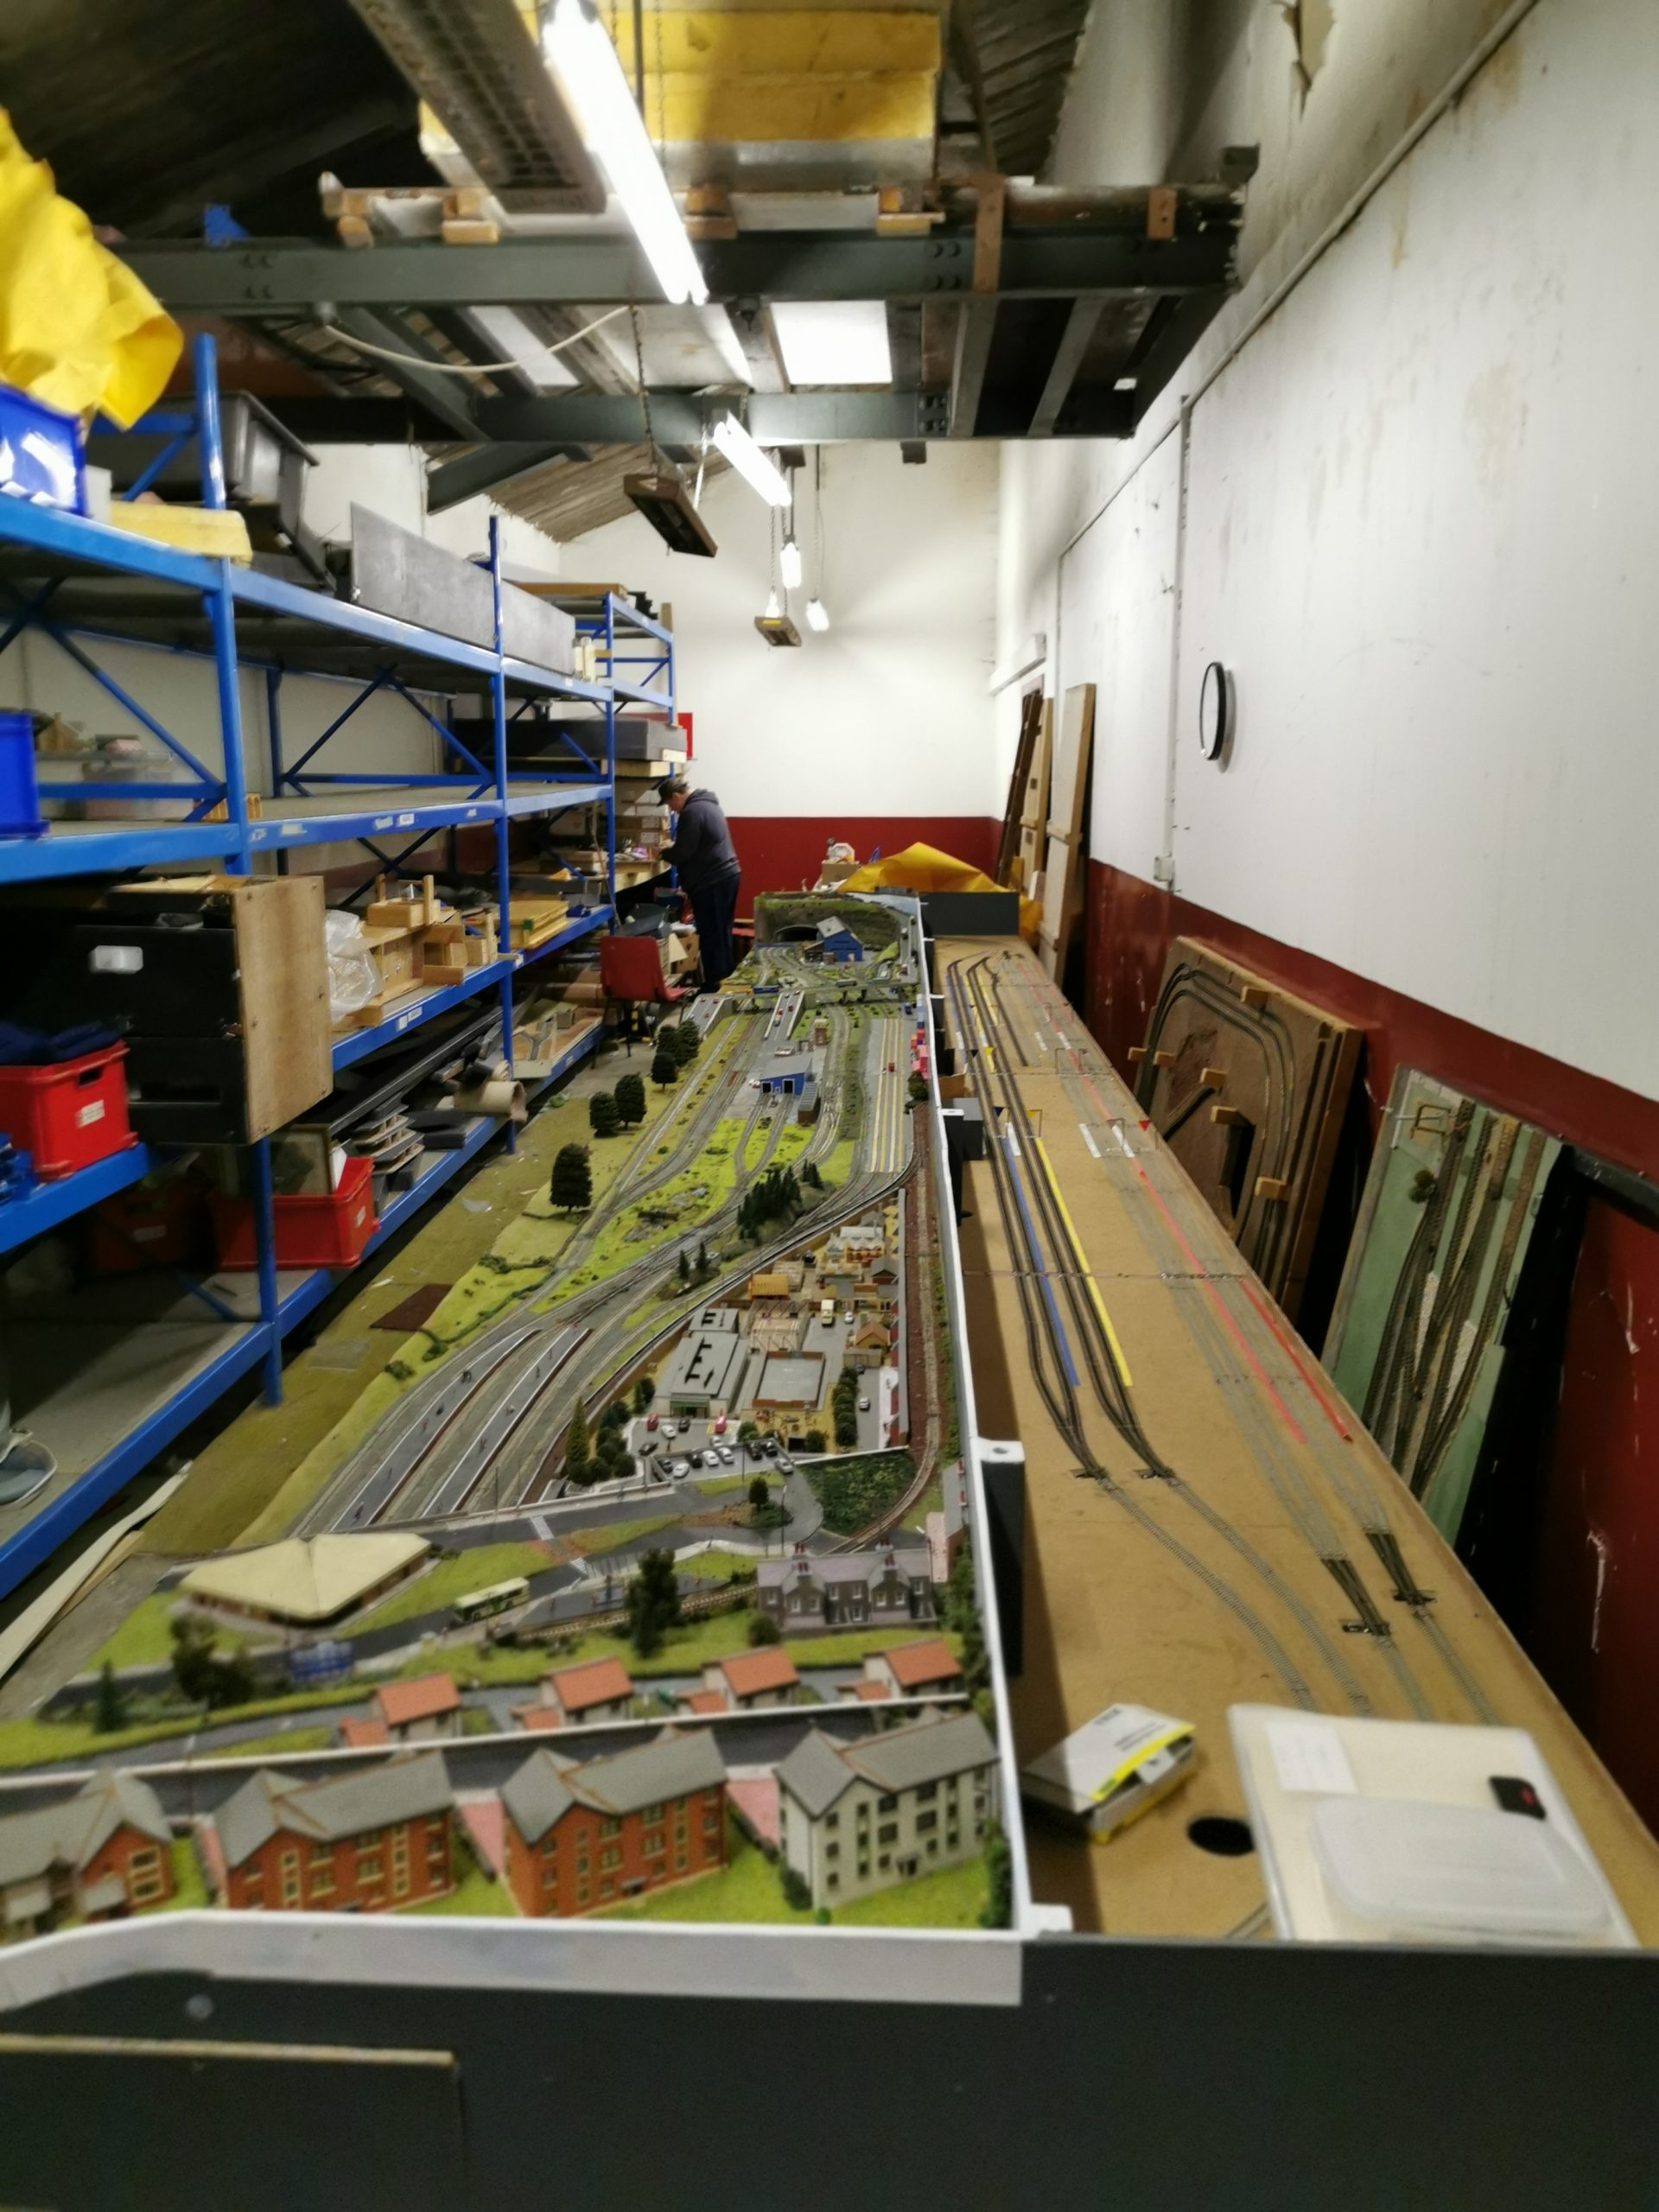 Full size picture of Glenrothes model railway club layout in N scale